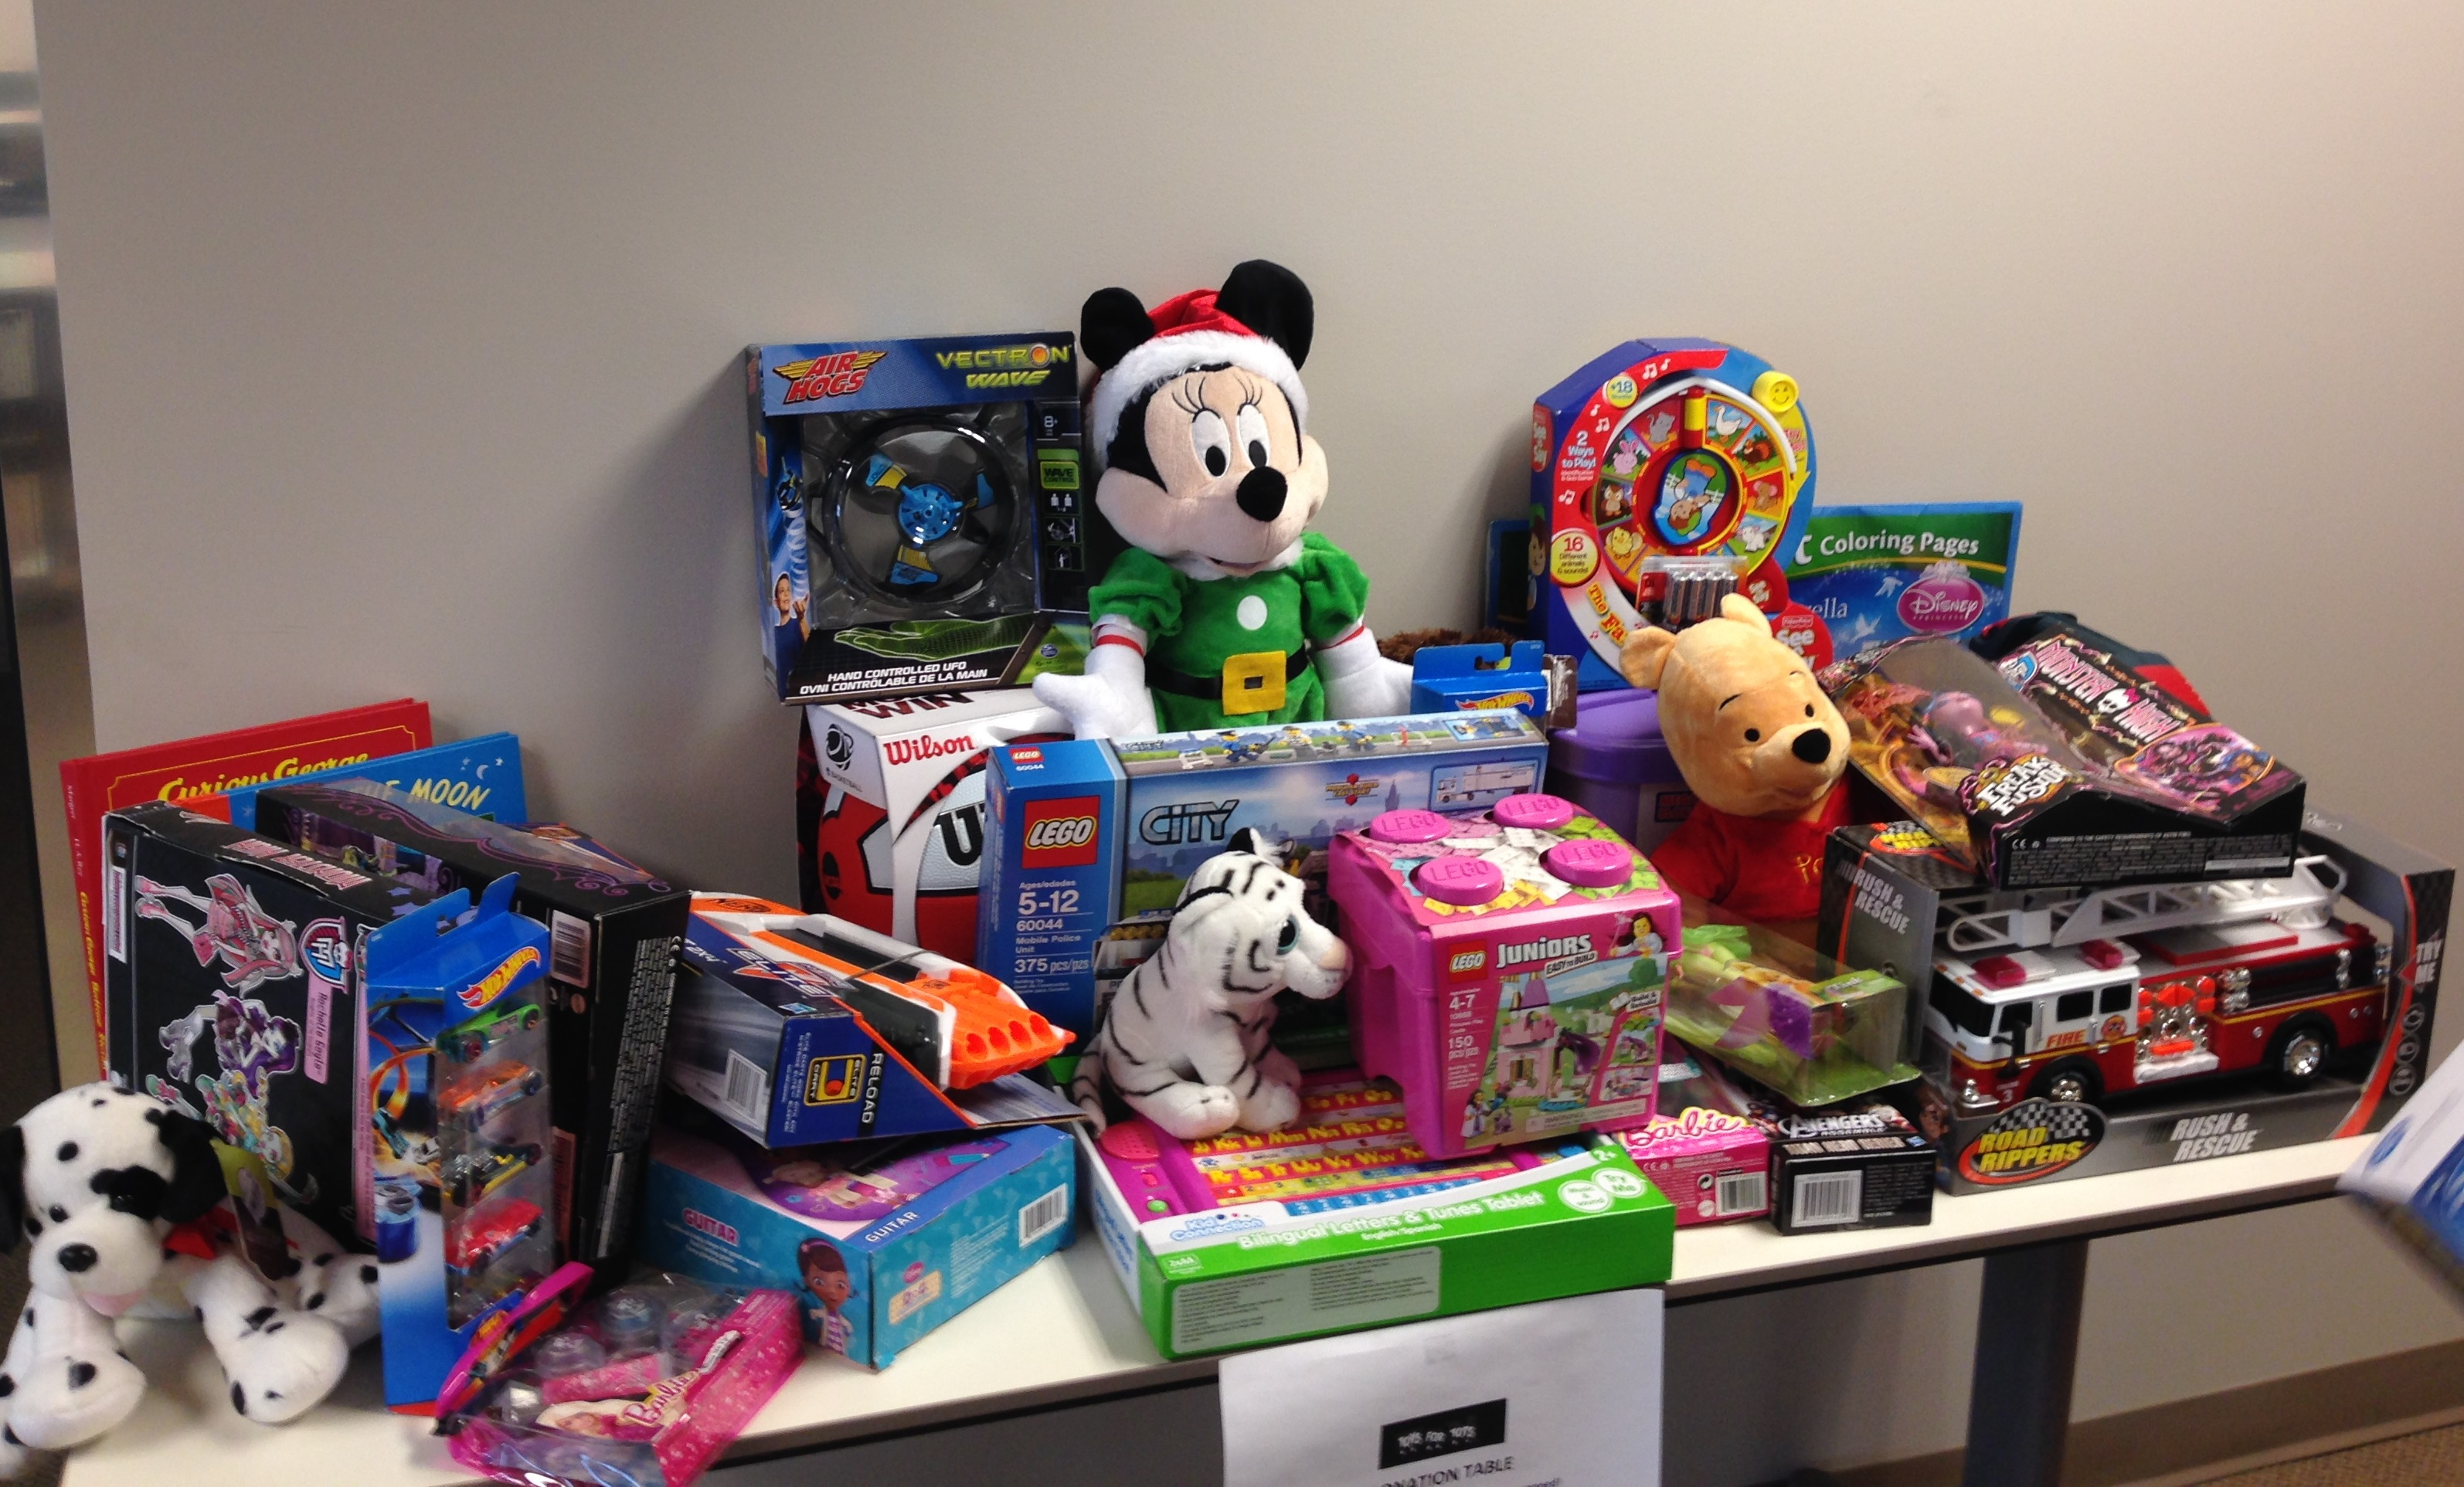 Toys For Tots Family Request : Guardian gives back this holiday season